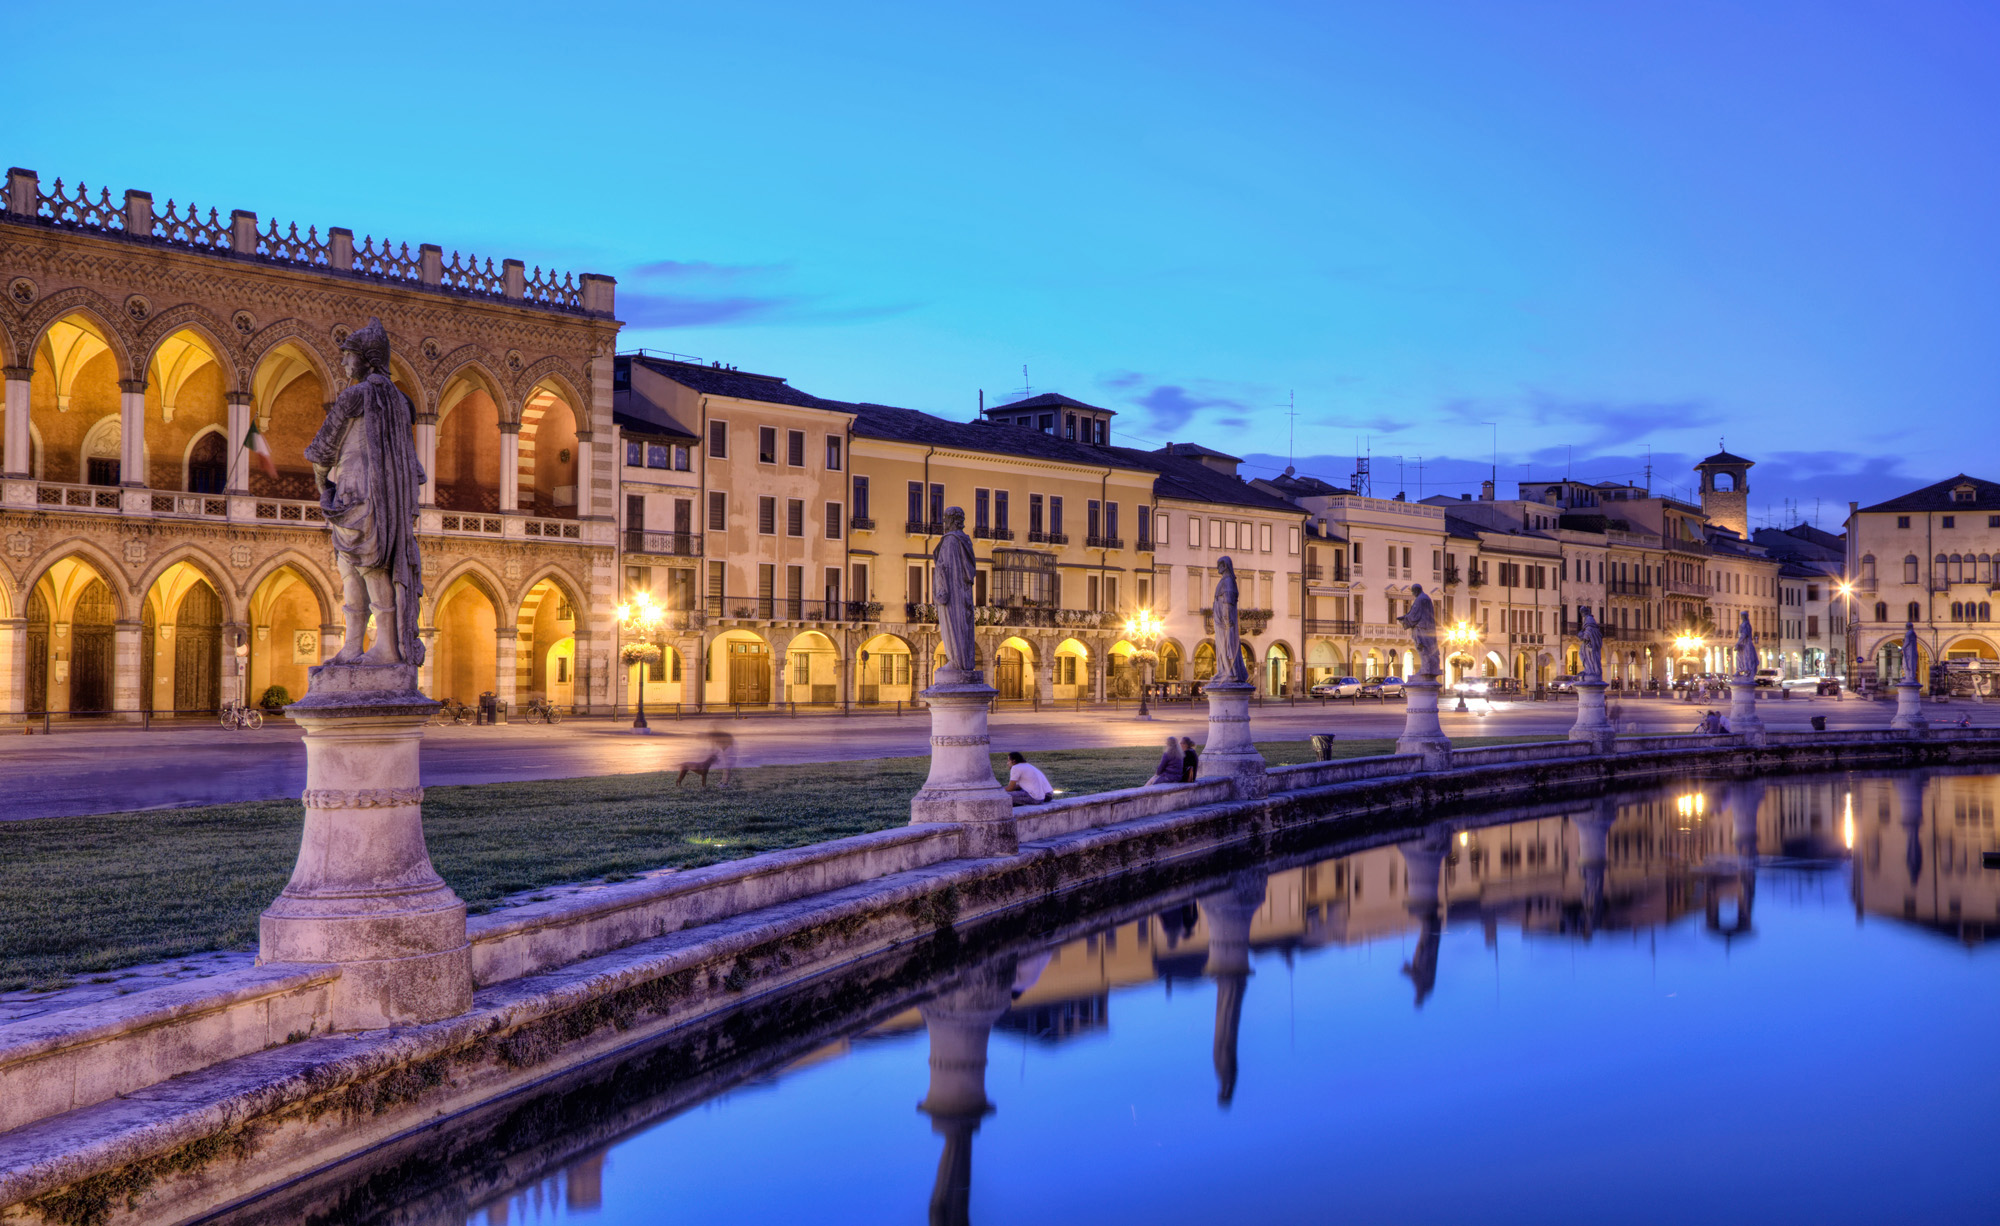 Wonderful Square of Prato della Valle in Padua